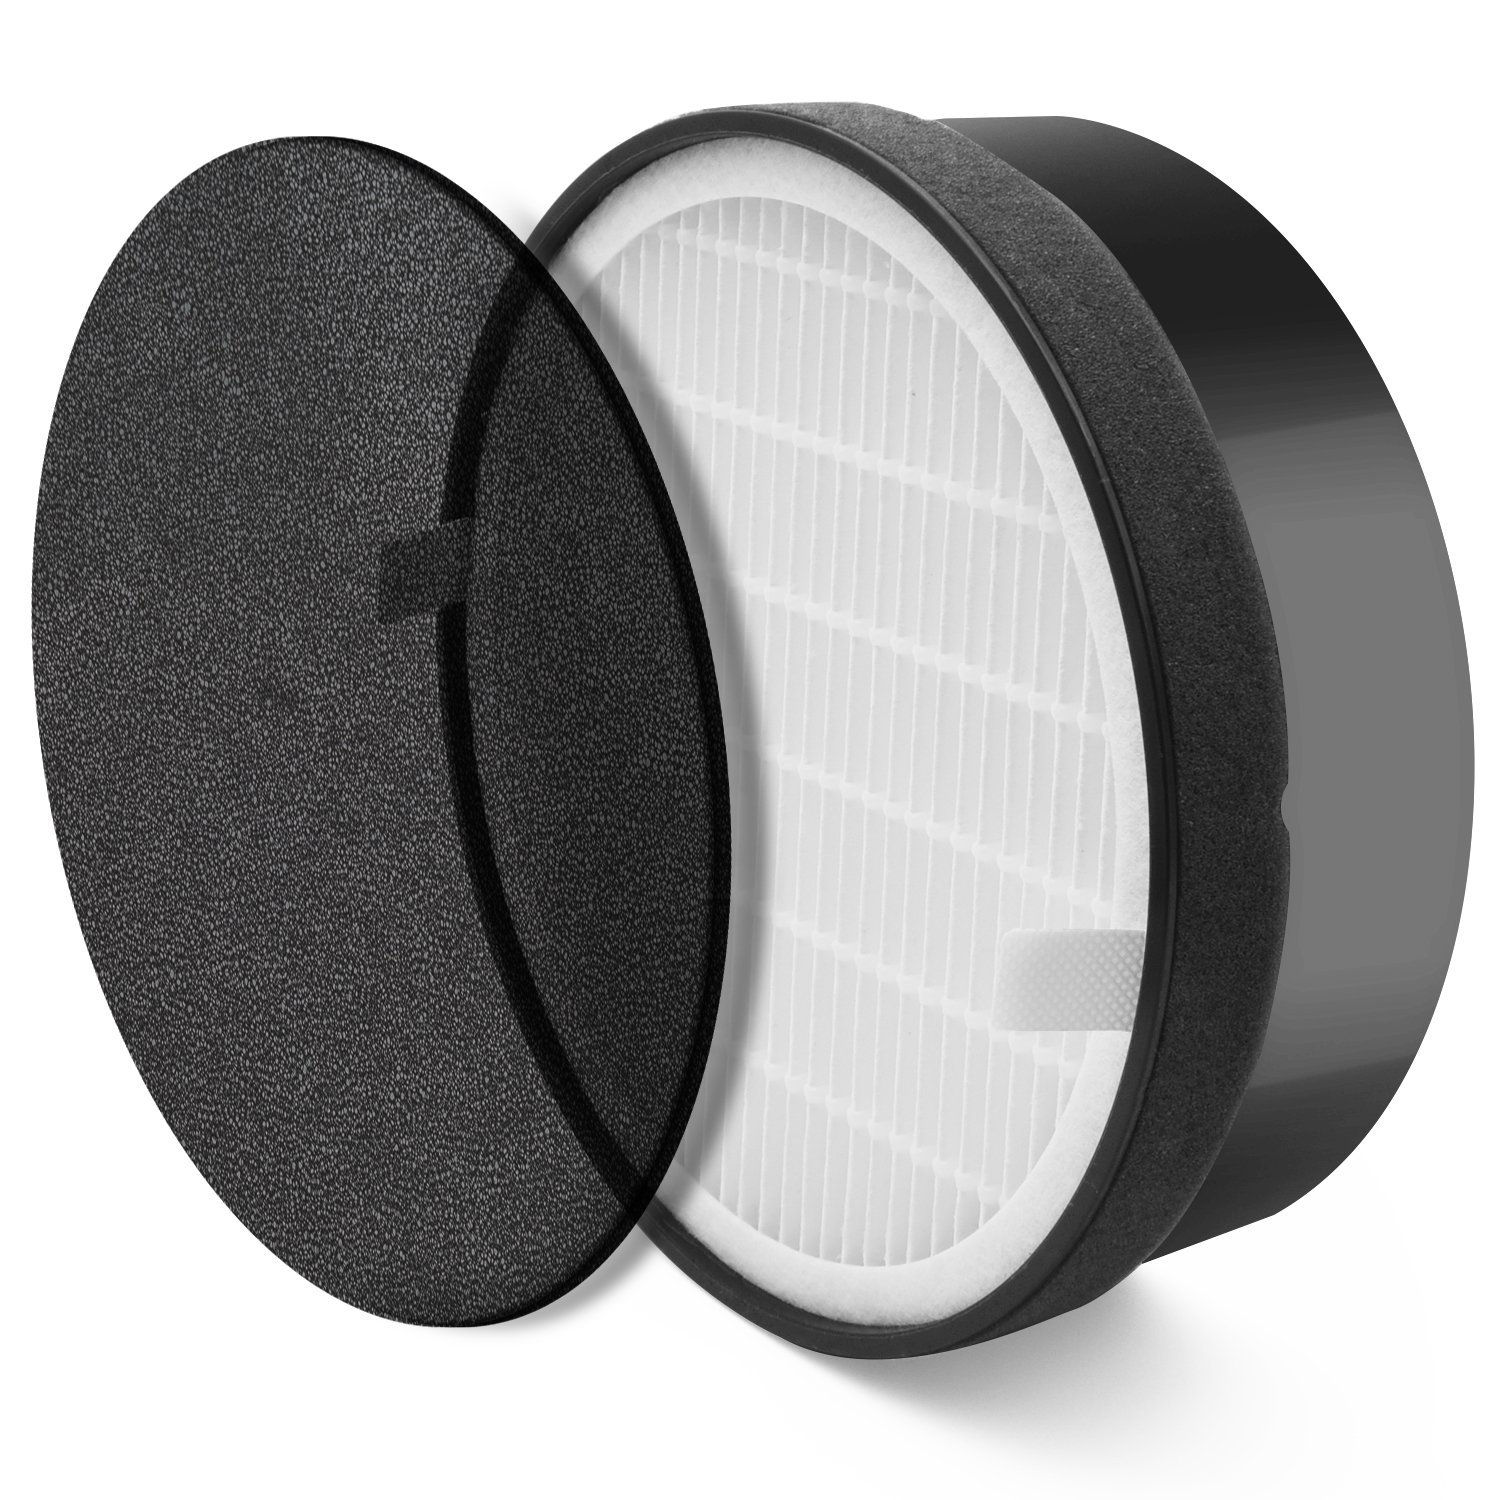 Levoit Air Purifier LV-H132 Replacement Filter, True HEPA and Activated Carbon Filters Set, LV-H132-RF